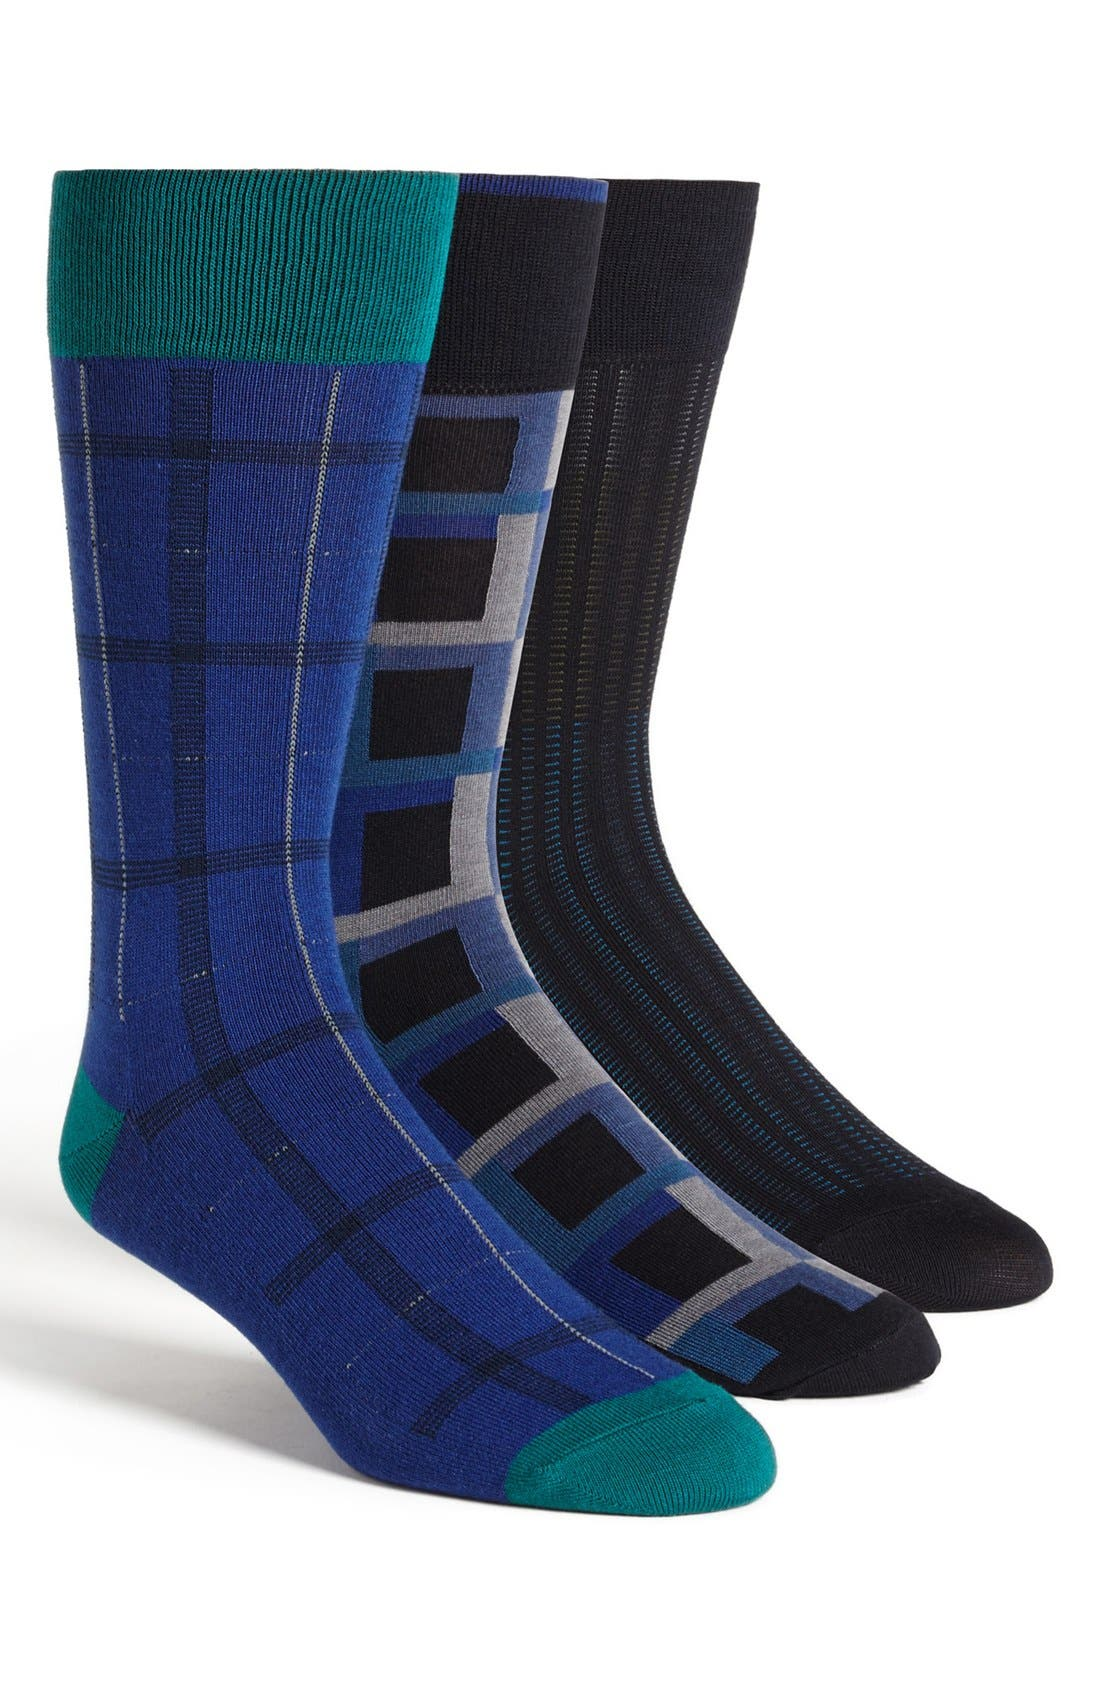 Alternate Image 1 Selected - Vince Camuto Mixed Pattern Socks (Assorted 3-Pack)